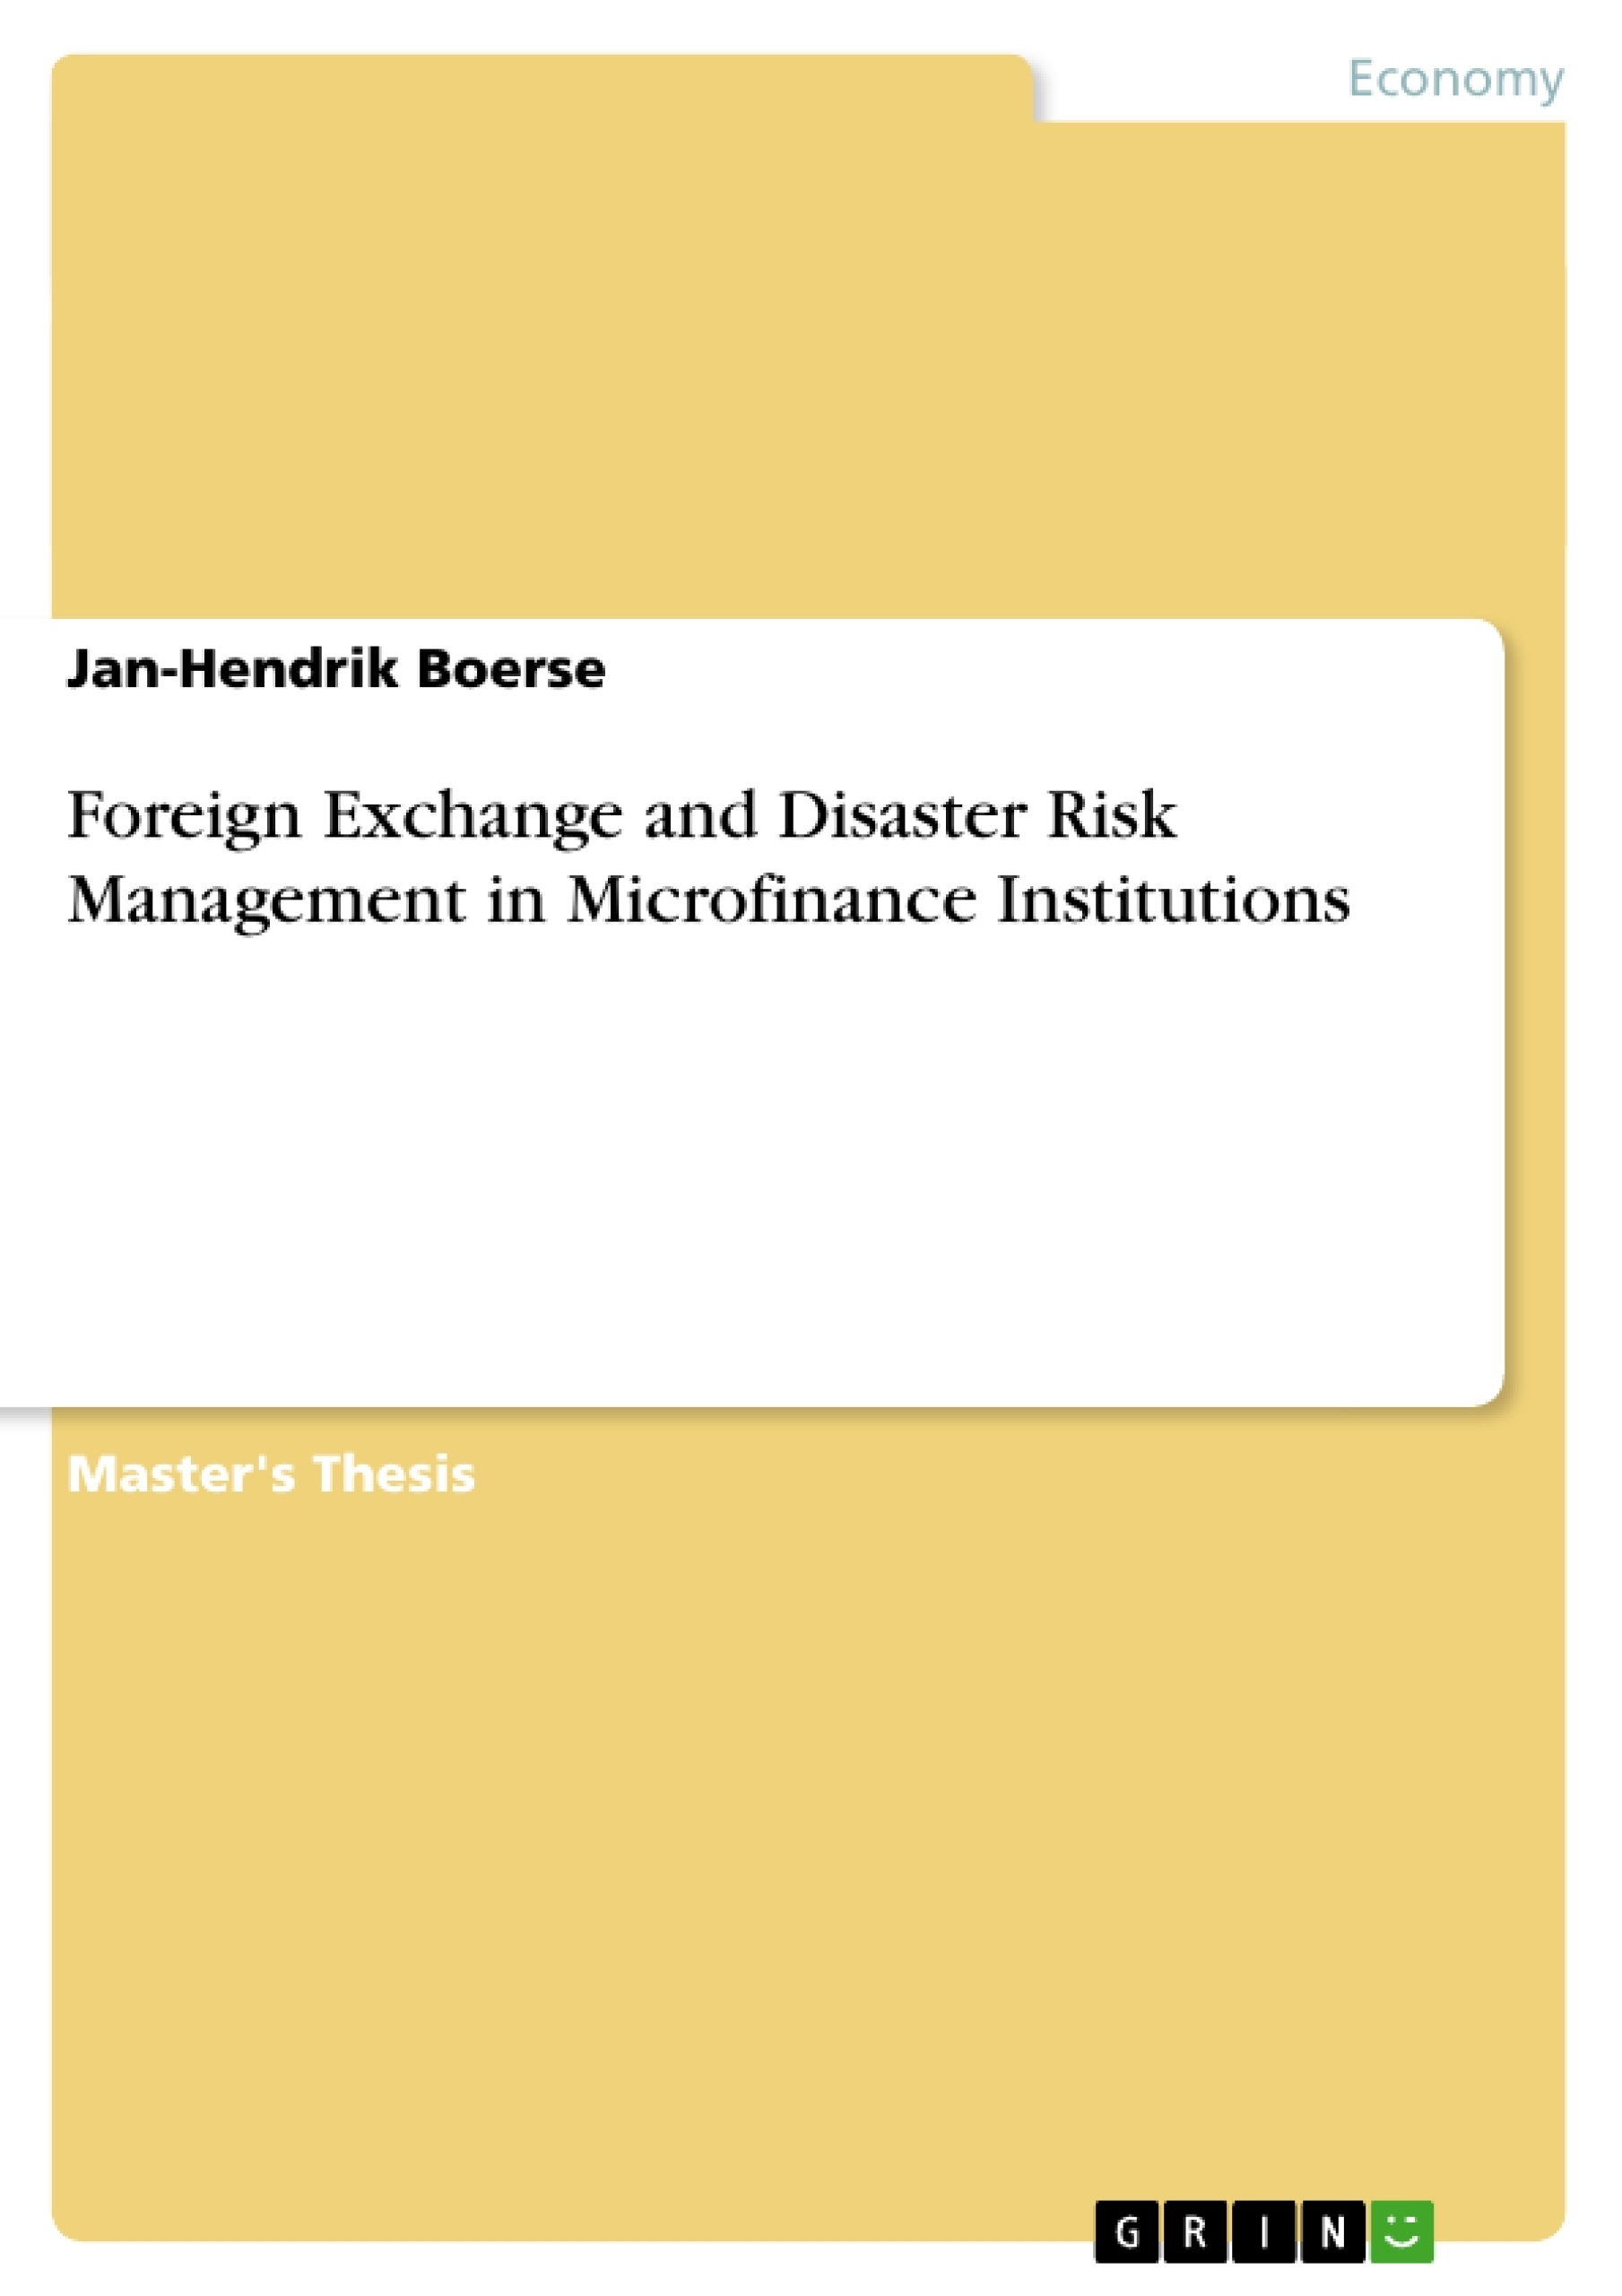 Title: Foreign Exchange and Disaster Risk Management in Microfinance Institutions